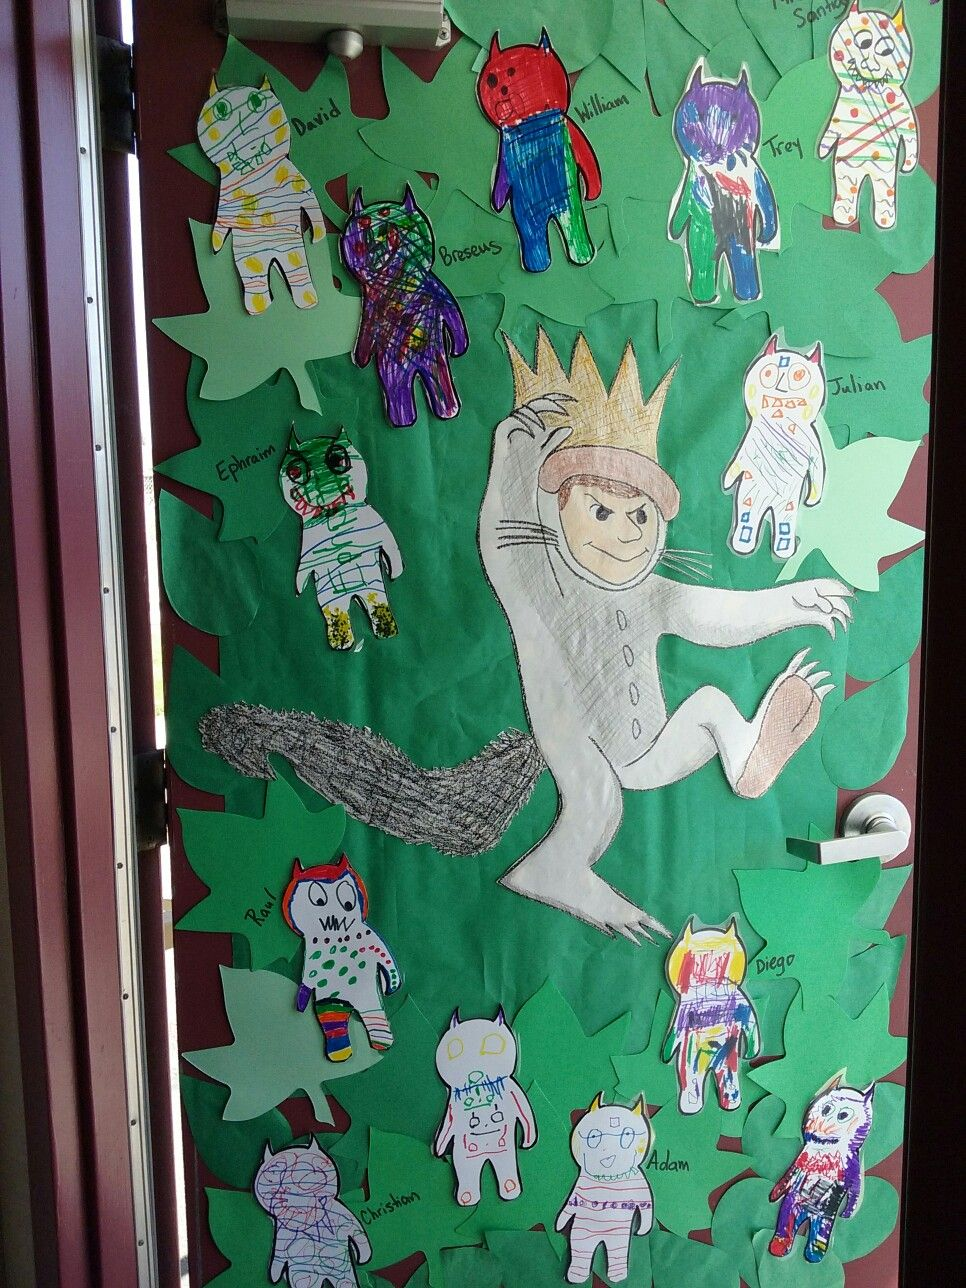 Where The Wild Things Are Door Decoration | Classroom ...